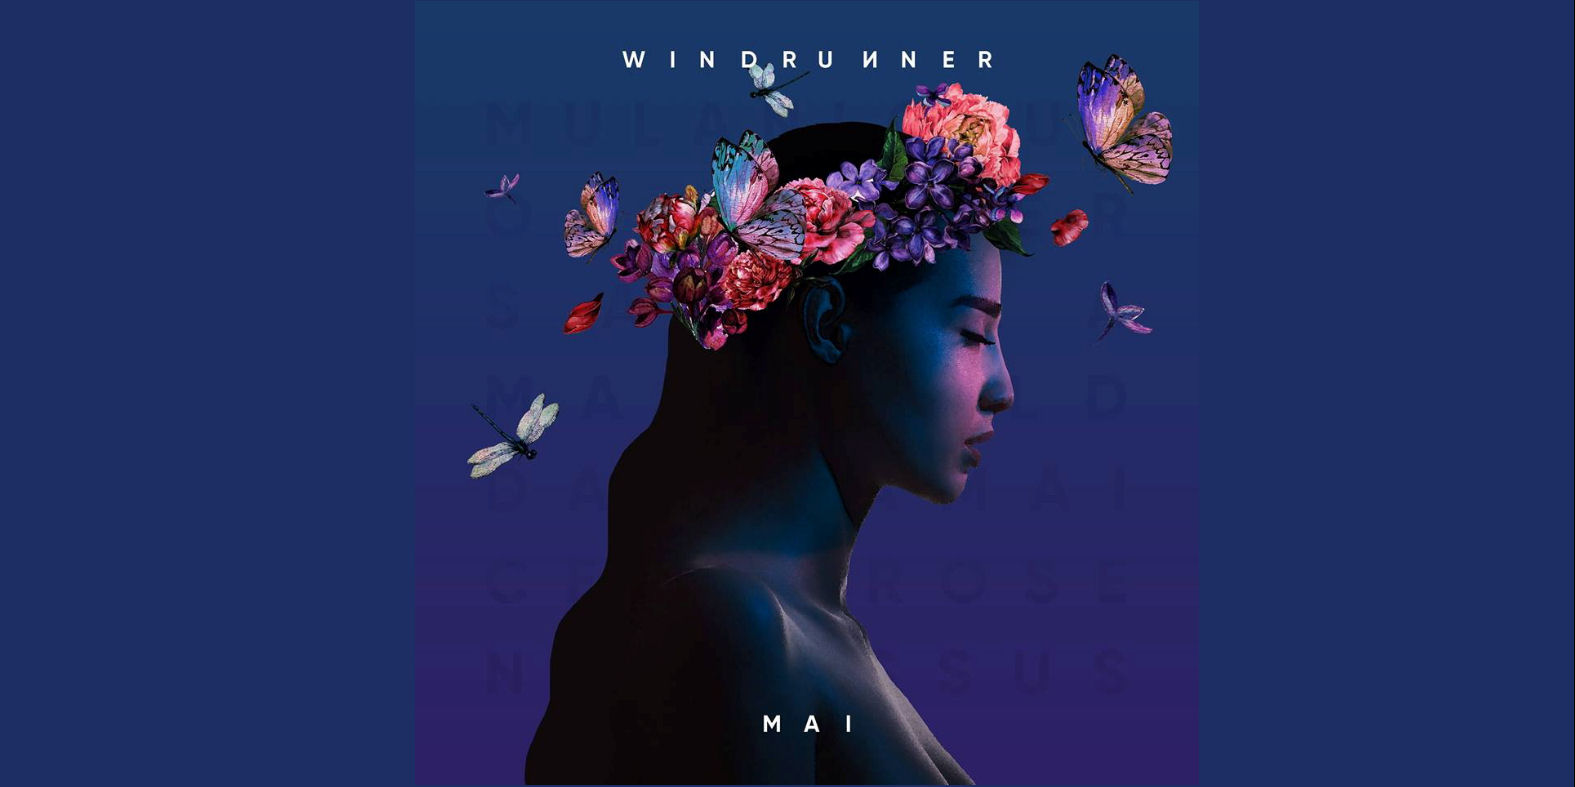 Windrunner Mai review, Windrunner, Windrunner band, Windrunner metalcore band, metalcore, djent, post-hardcore, progressive metalcore, sickandsound, metalcore albums 2018, metalcore albums November 2018, new metalcore albums November 2018, metalcore albums 2018, metalcore releases November 2018, djent bands, Famined Records, Chelsea Coronin, interview with Windrunner band, Windrunner Vietnamese band, Windrunner metalcore band Vietnam, Vietnamese metalcore bands, metalcore bands, Windrunner Rose, Windrunner Vui EP, Windrunner Gravity, Windrunner Orchid, Windrunner Mai album, New album by Windrunner, Windrunner Mai, Listen to Windrunner Rose, Stream Windrunner Rose, Ascolta Windrunner Rose, Windrunner Mai lead single, Windrunner Rose official video, Watch video for Windrunner Rose, Windrunner band debut, Duong Bui, Trung Tôn, Nam Dao, Híu NT, David Hudd, Windrunner sign to Famined Records, female fronted metalcore bands, Vietnam-based metalcore band, sickandsound, Mulan, Oleander, Sakura, Marigold, Orchid, Dahlia, MAI, Cedar, Rose, Narcissus, Lotus, Windrunner Mai review, Windrunner Mai recensione, Listen to Windrunner Mai, Stream Windrunner Mai, Ascolta Windrunner Mai, Windrunner Mai tracklist, Windrunner Mai premiere